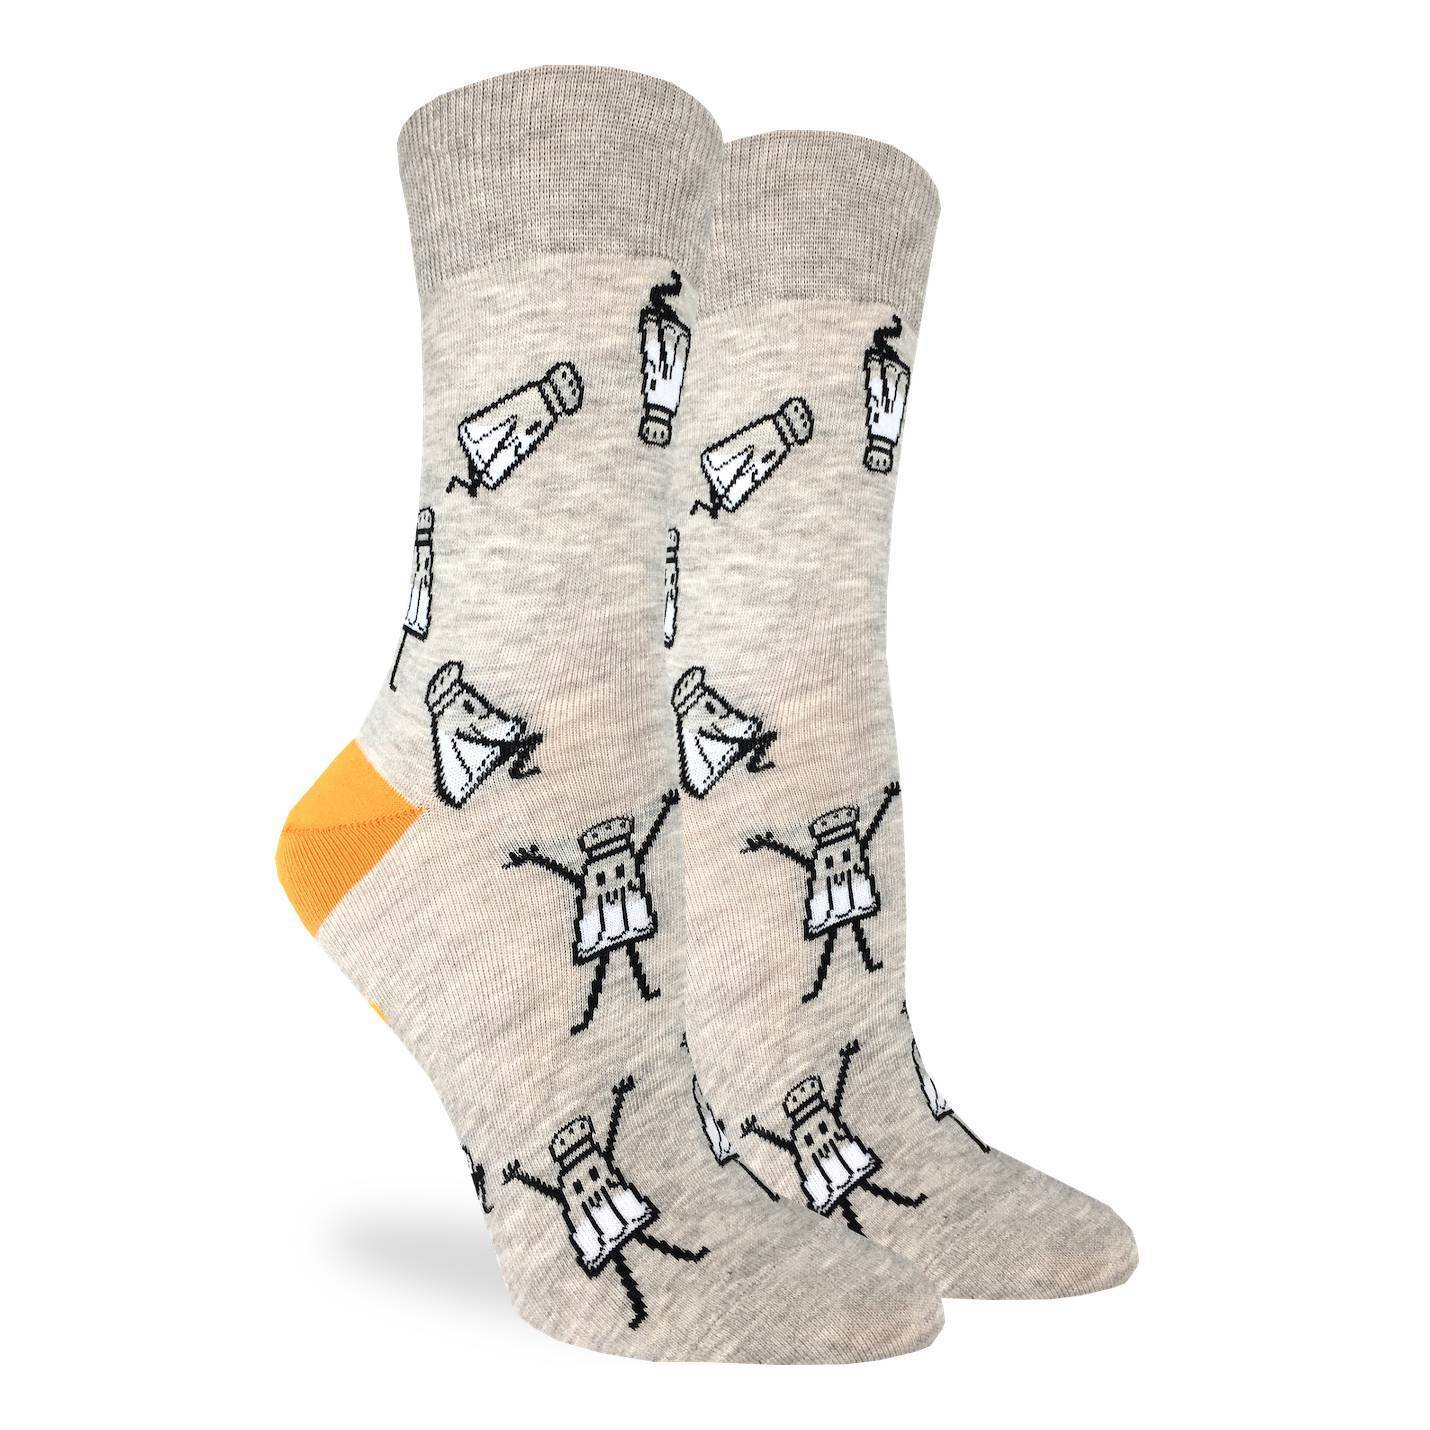 Women's Salt Shaker Socks - Good Luck Sock